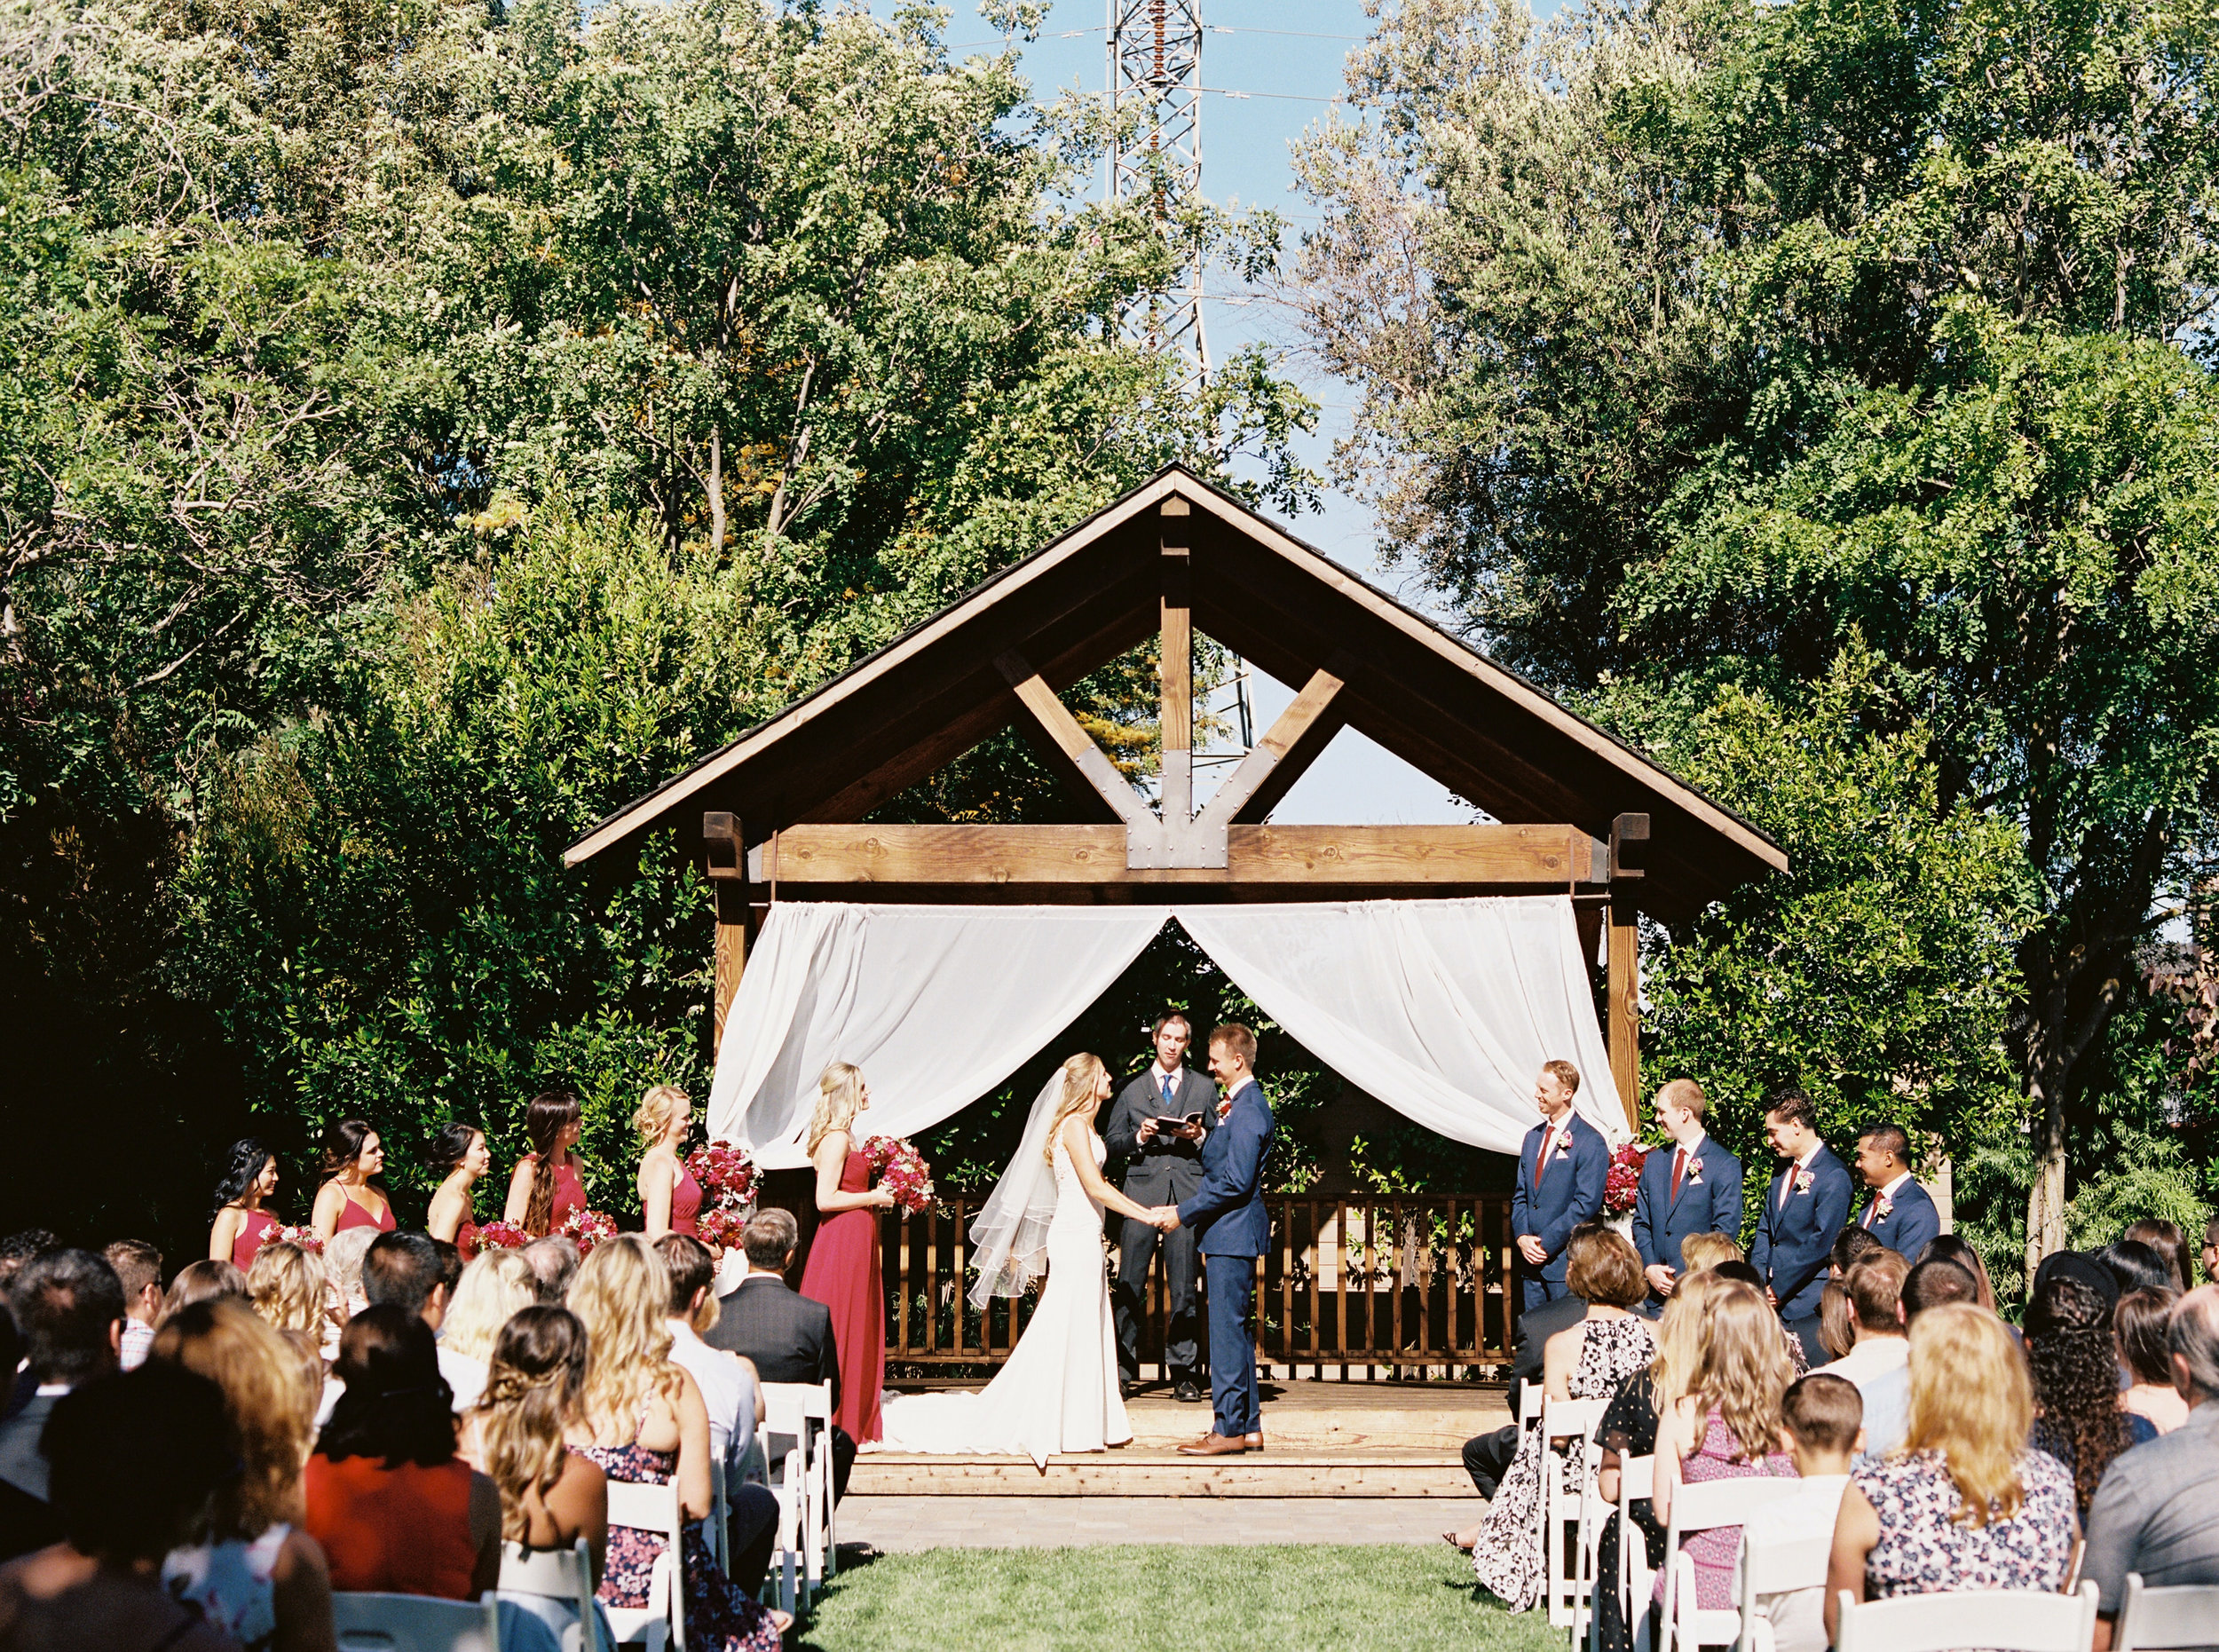 Crooked-vine-winery-wedding-in-livermore-california-71.jpg